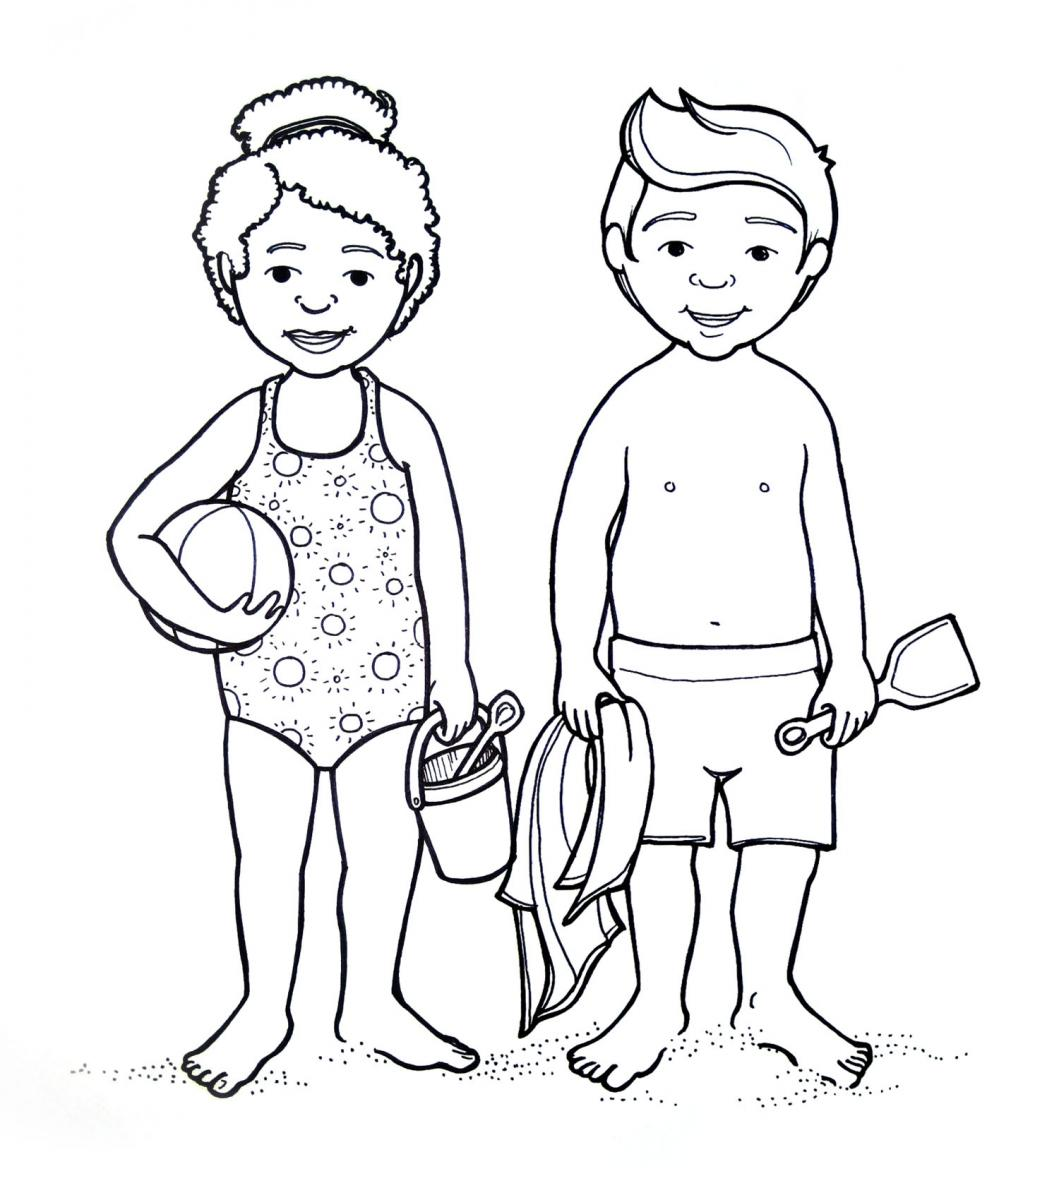 Coloring Pages Kids Parts Body: Female Body Outline Drawing At GetDrawings.com